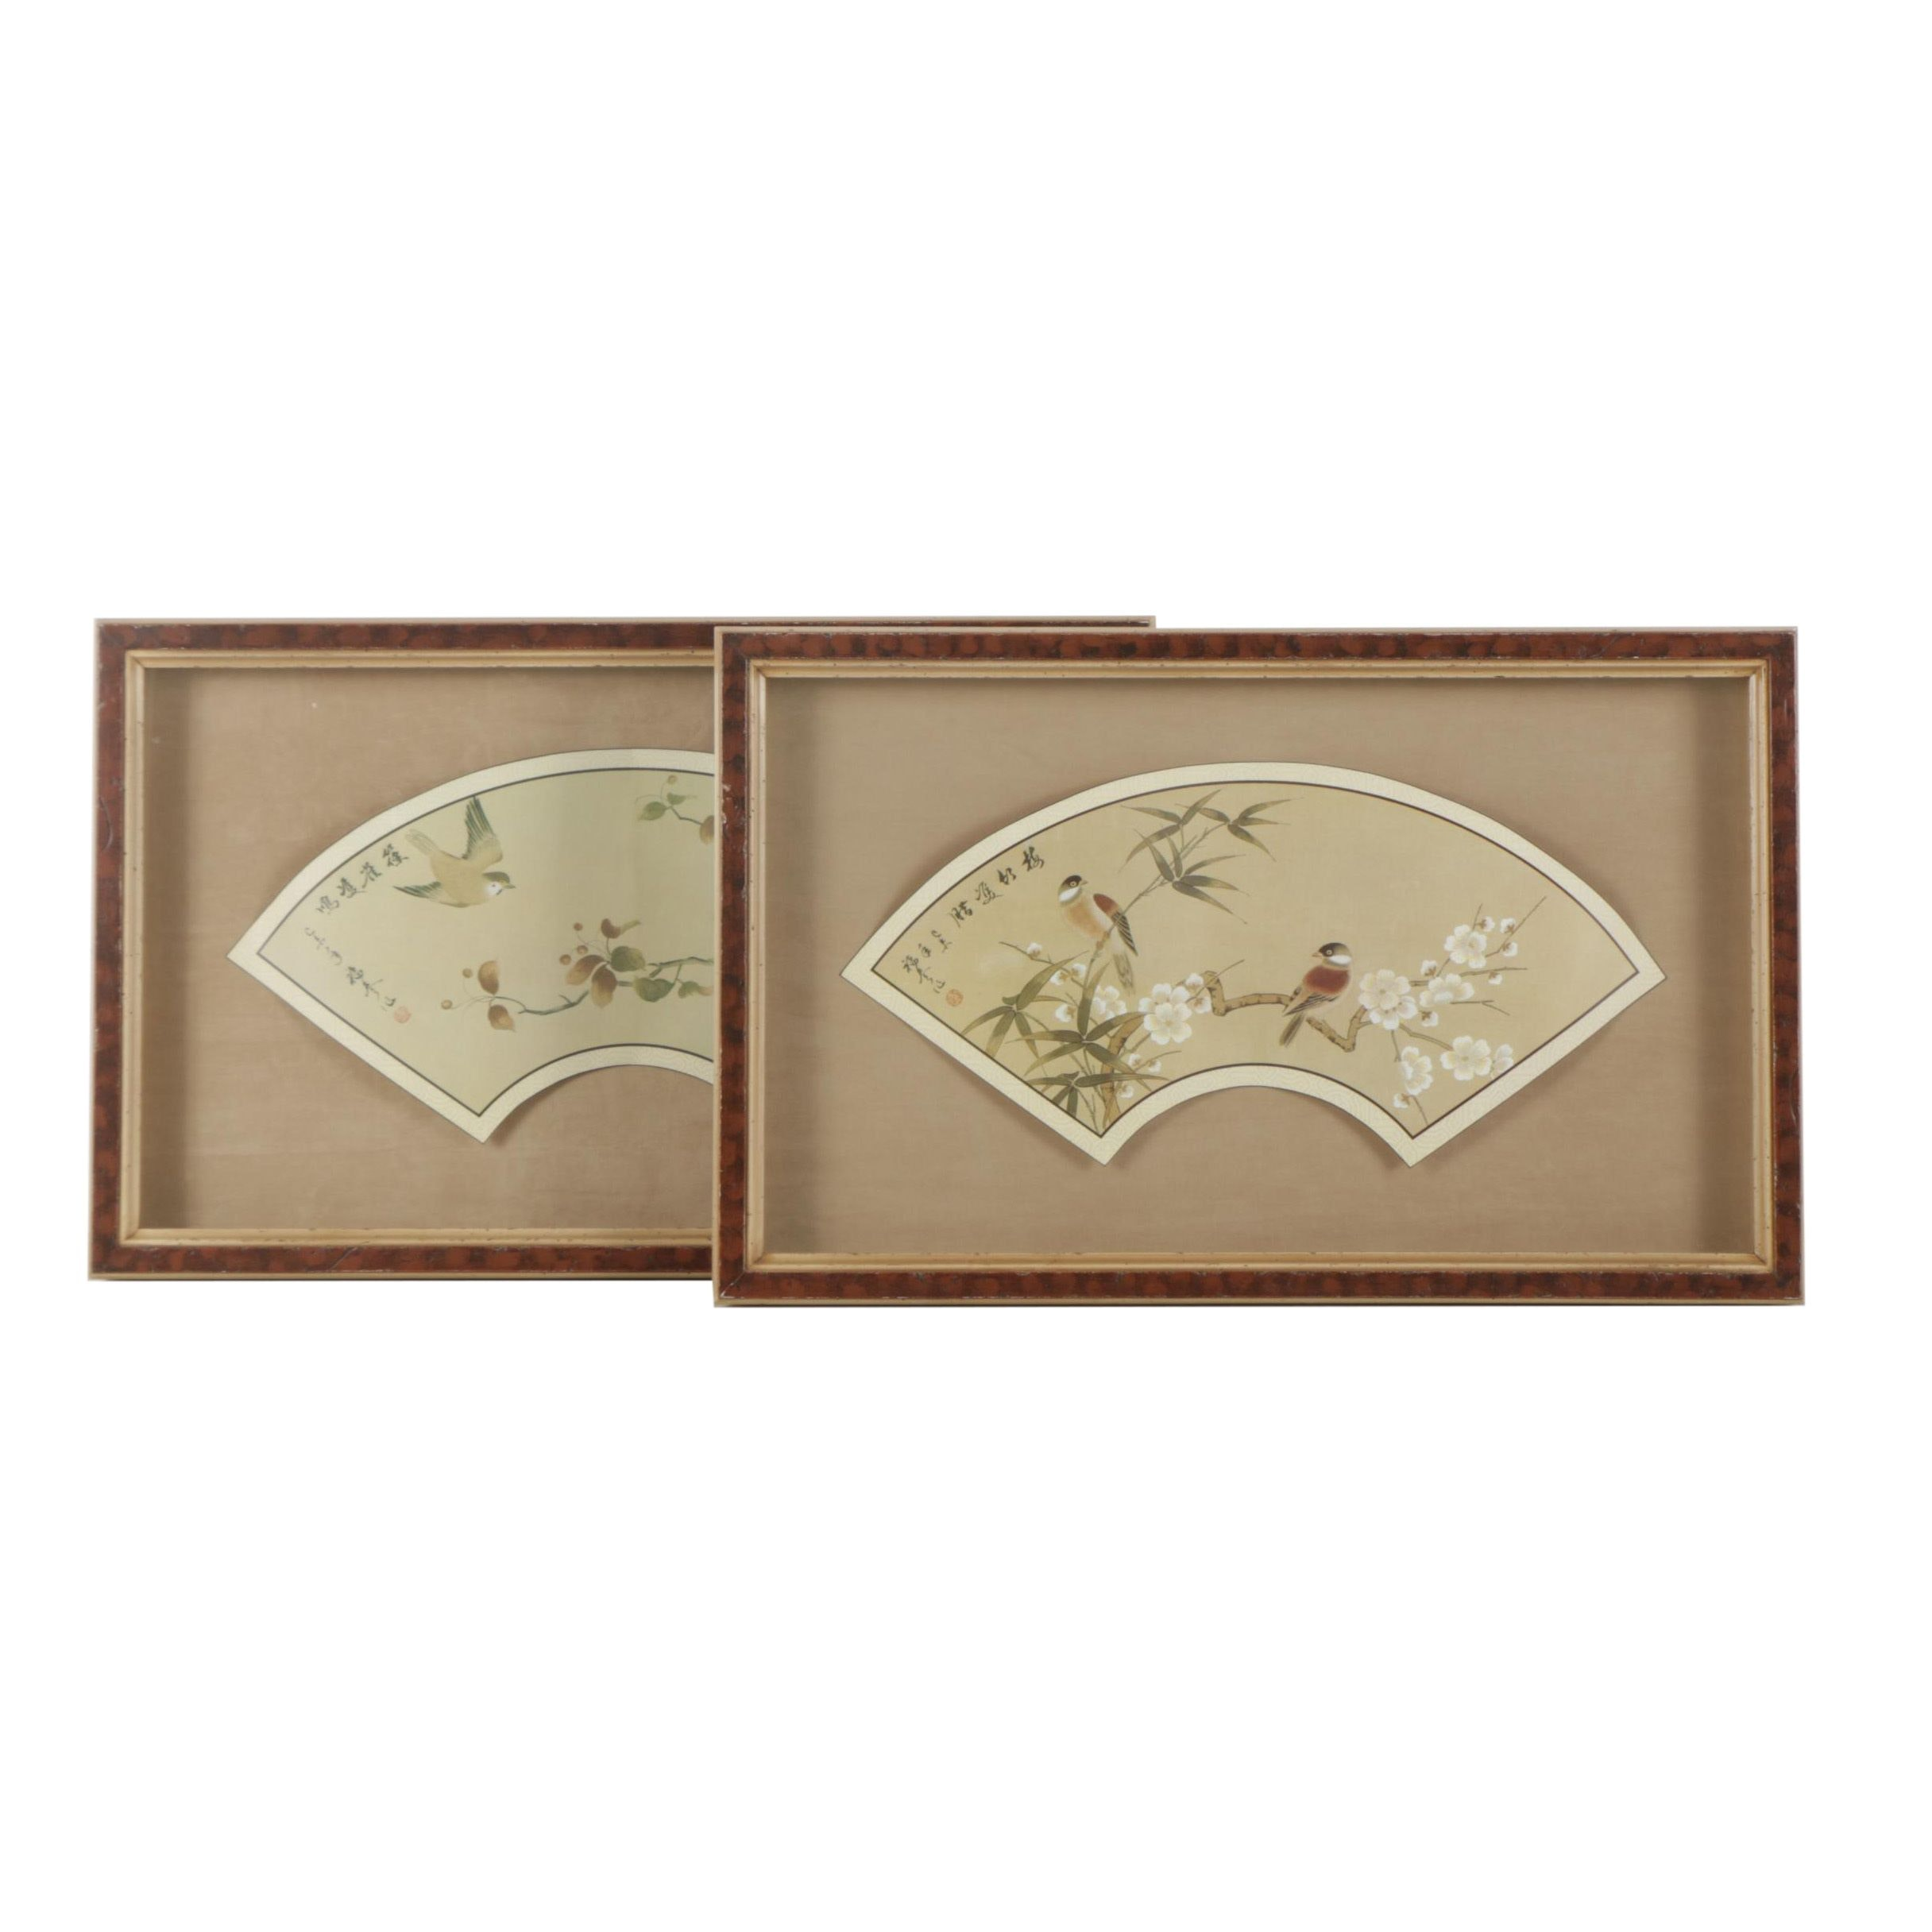 Offset Lithograph Prints After East Asian Style Painted Fans of Birds